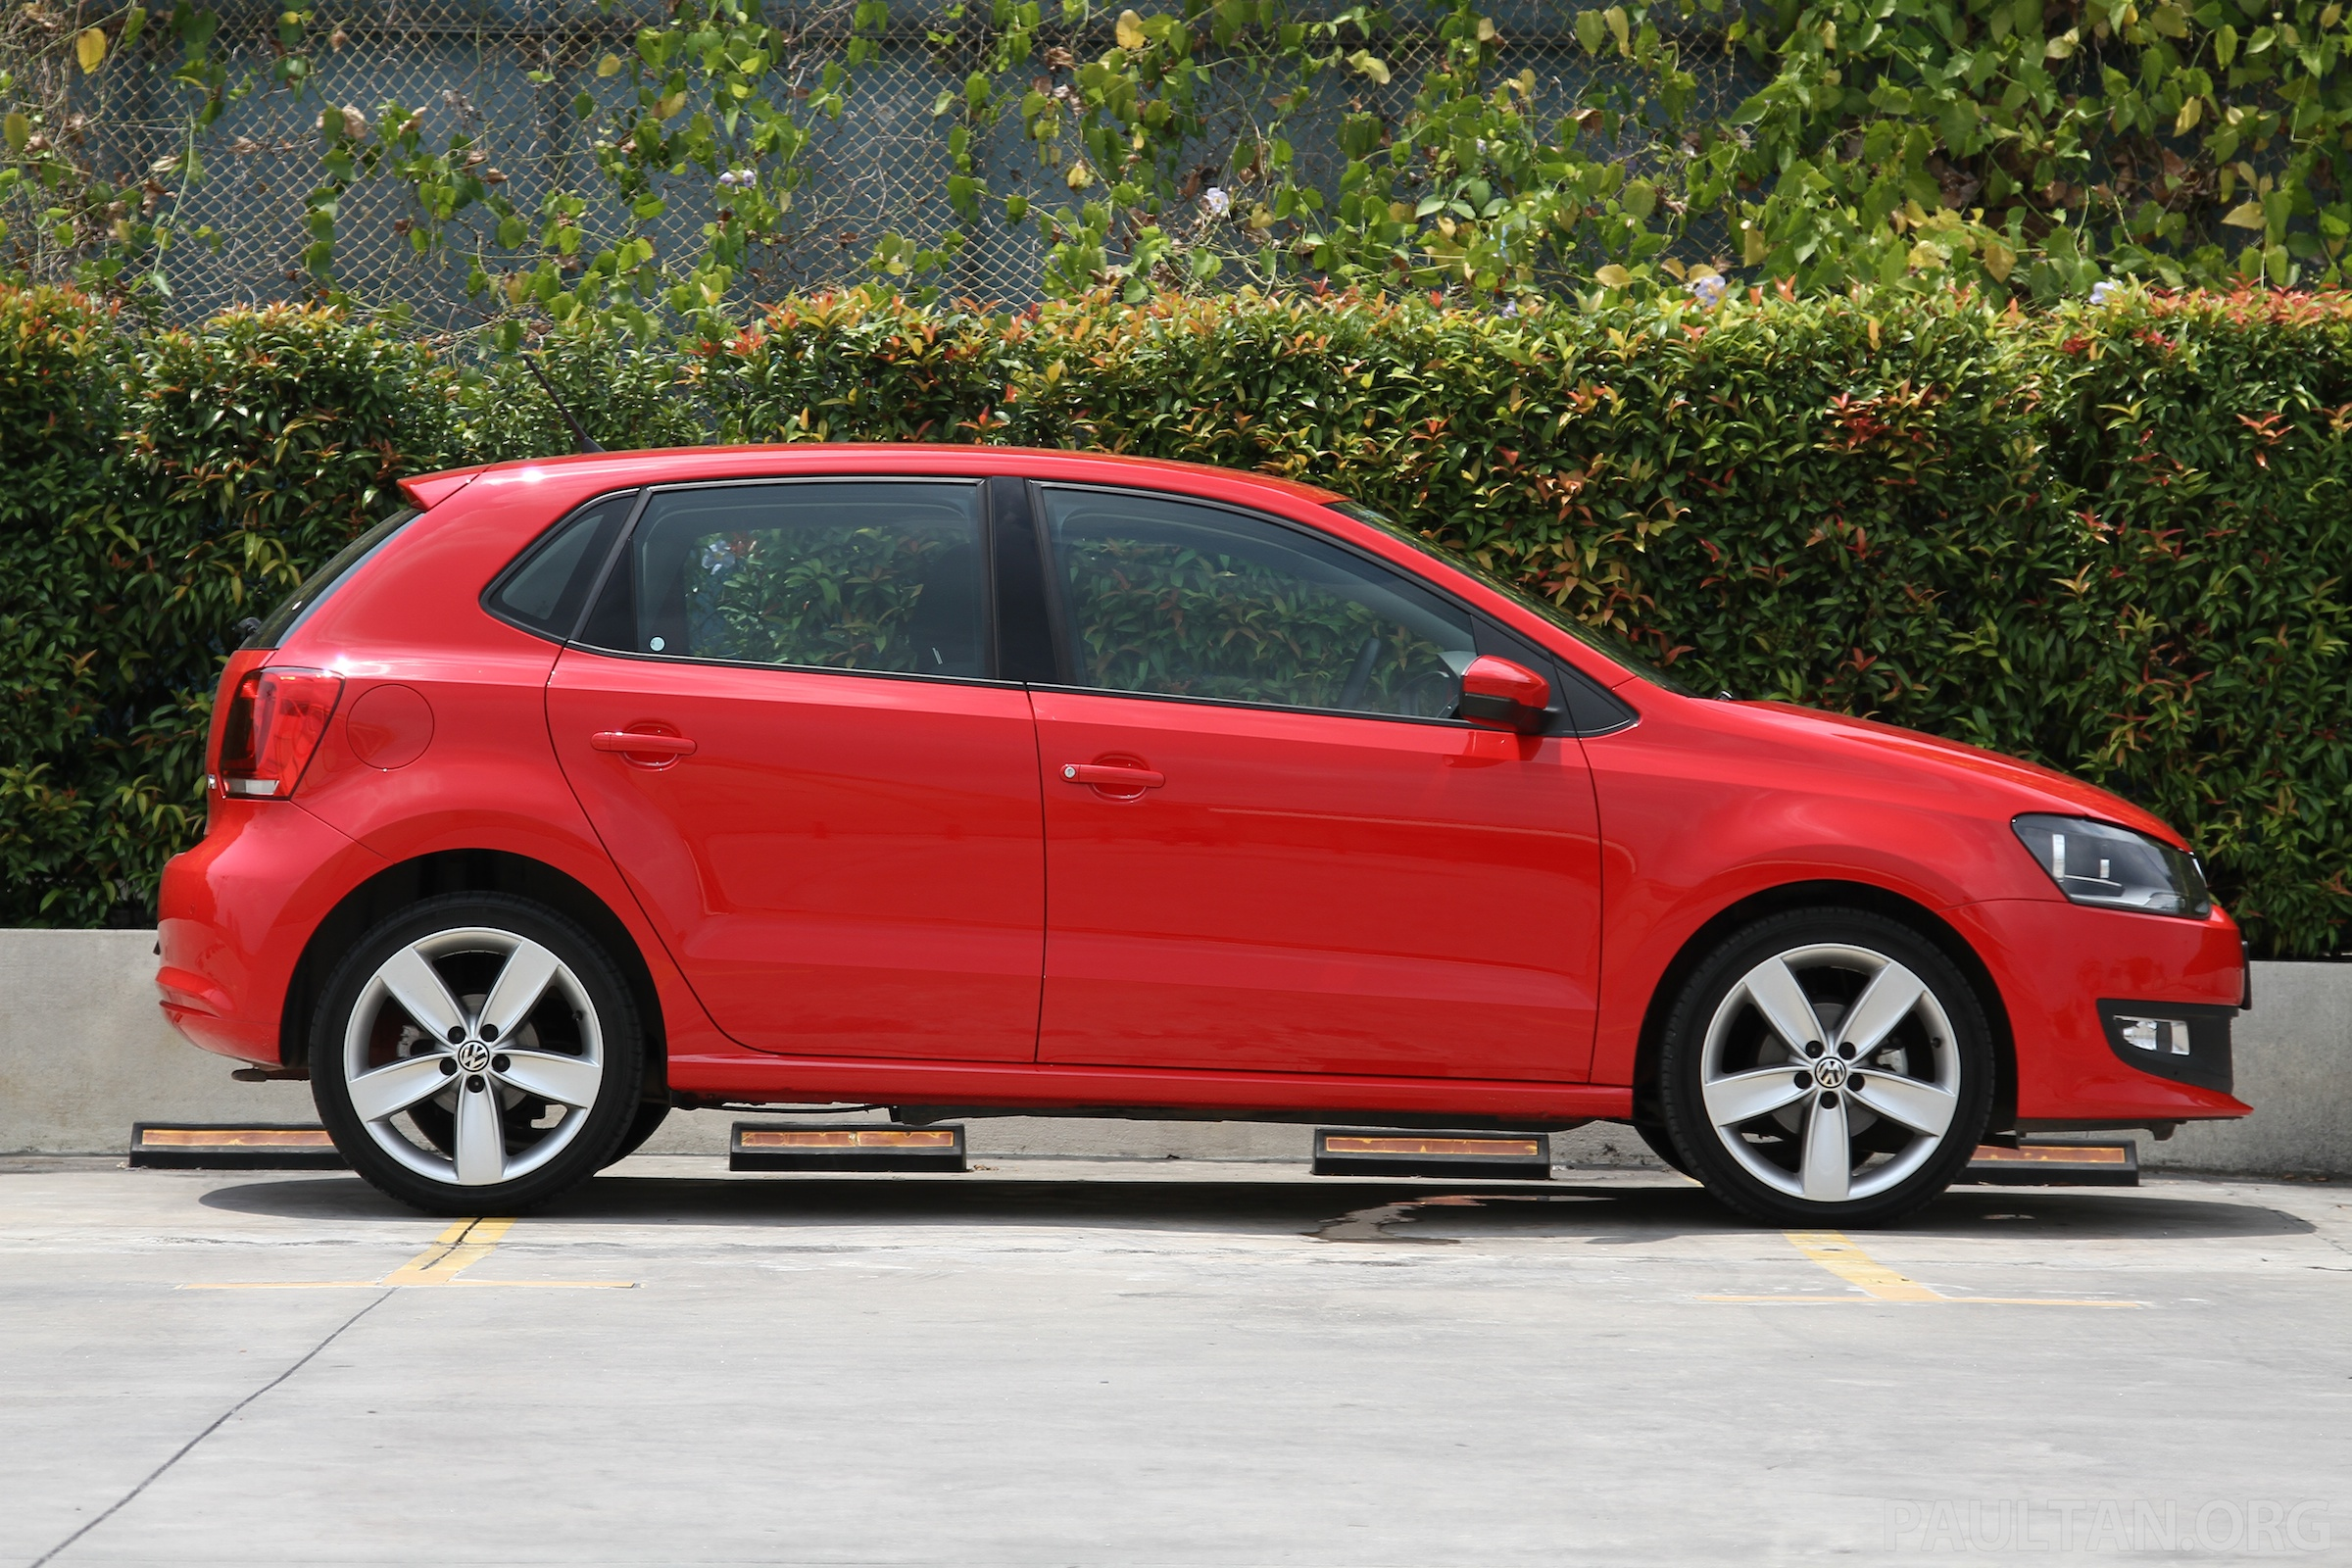 volkswagen polo 1 2 tsi review worth two myvis image 124292. Black Bedroom Furniture Sets. Home Design Ideas